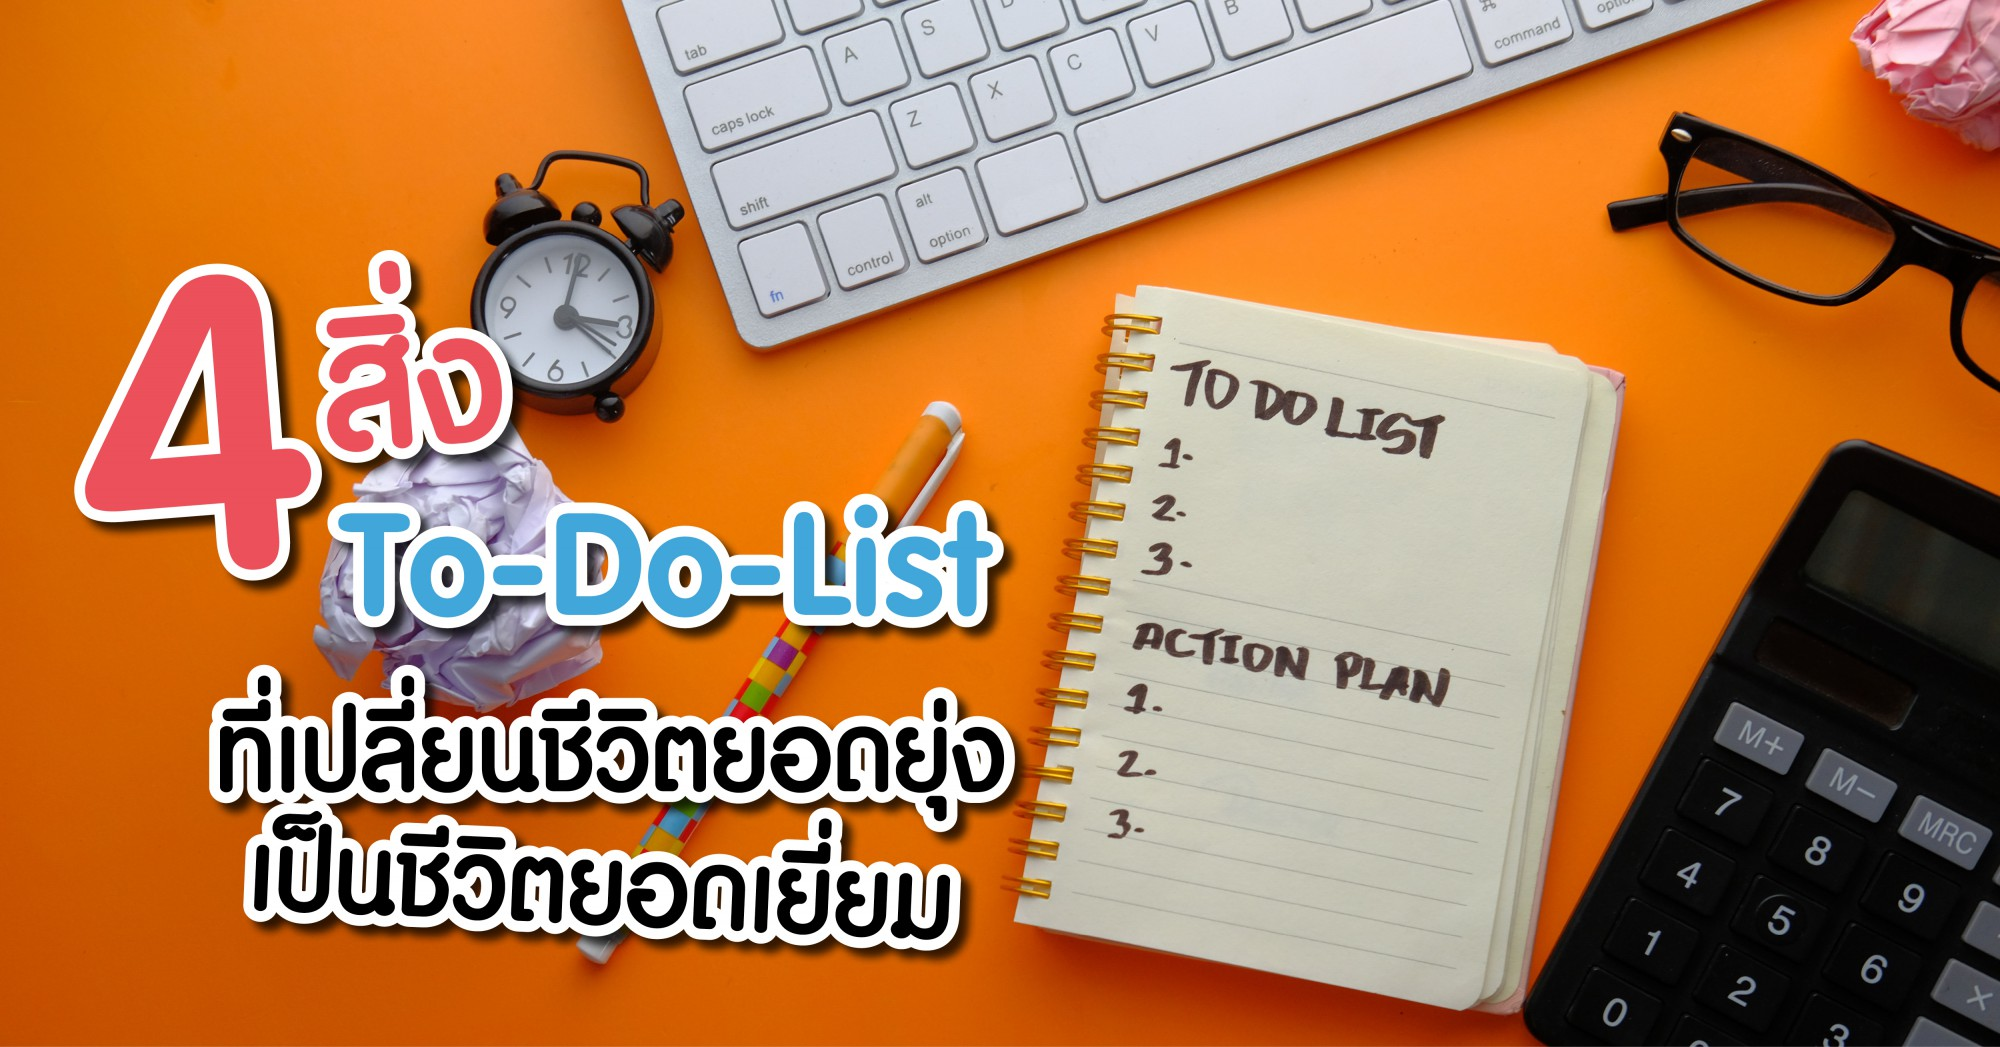 4 things to do list